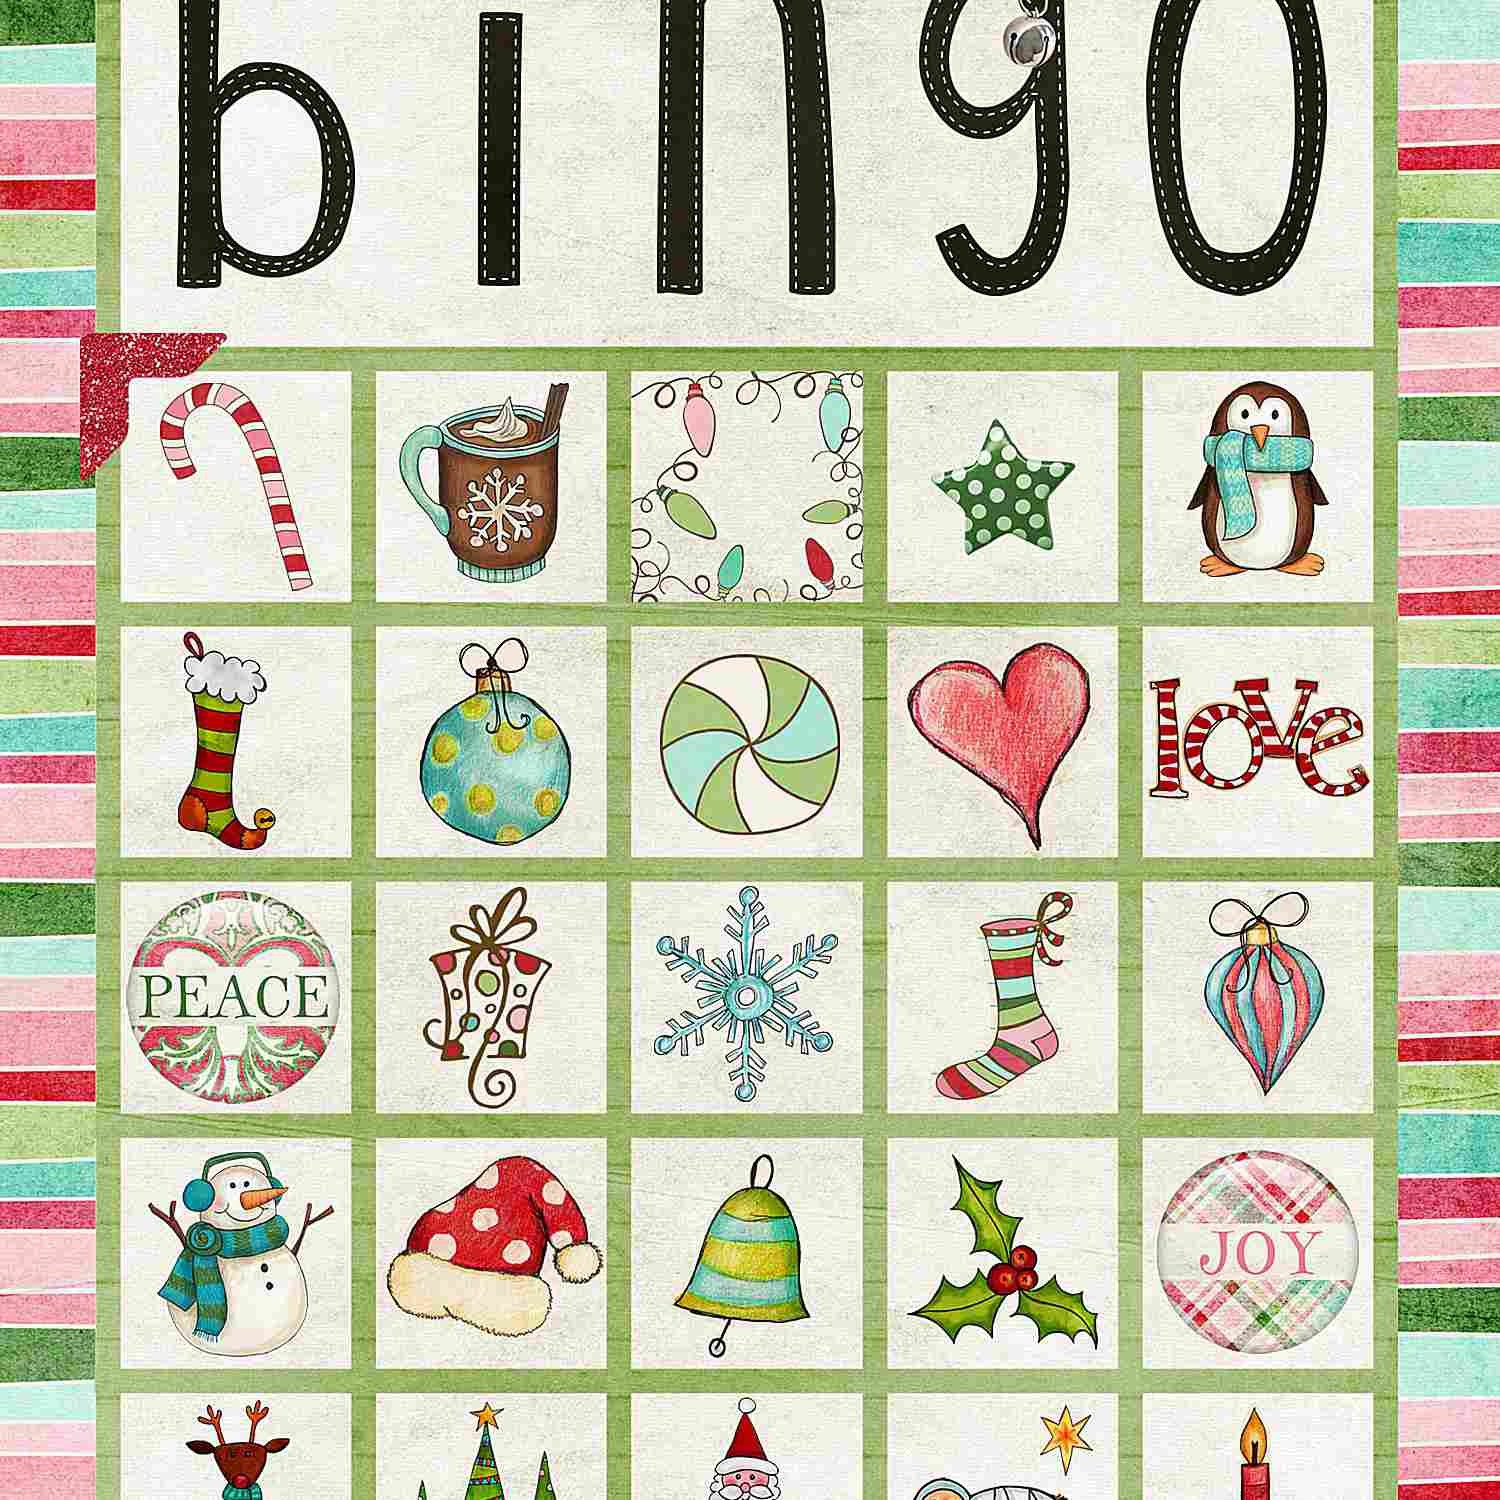 11 Free, Printable Christmas Bingo Games For The Family - Free Printable Christmas Bingo